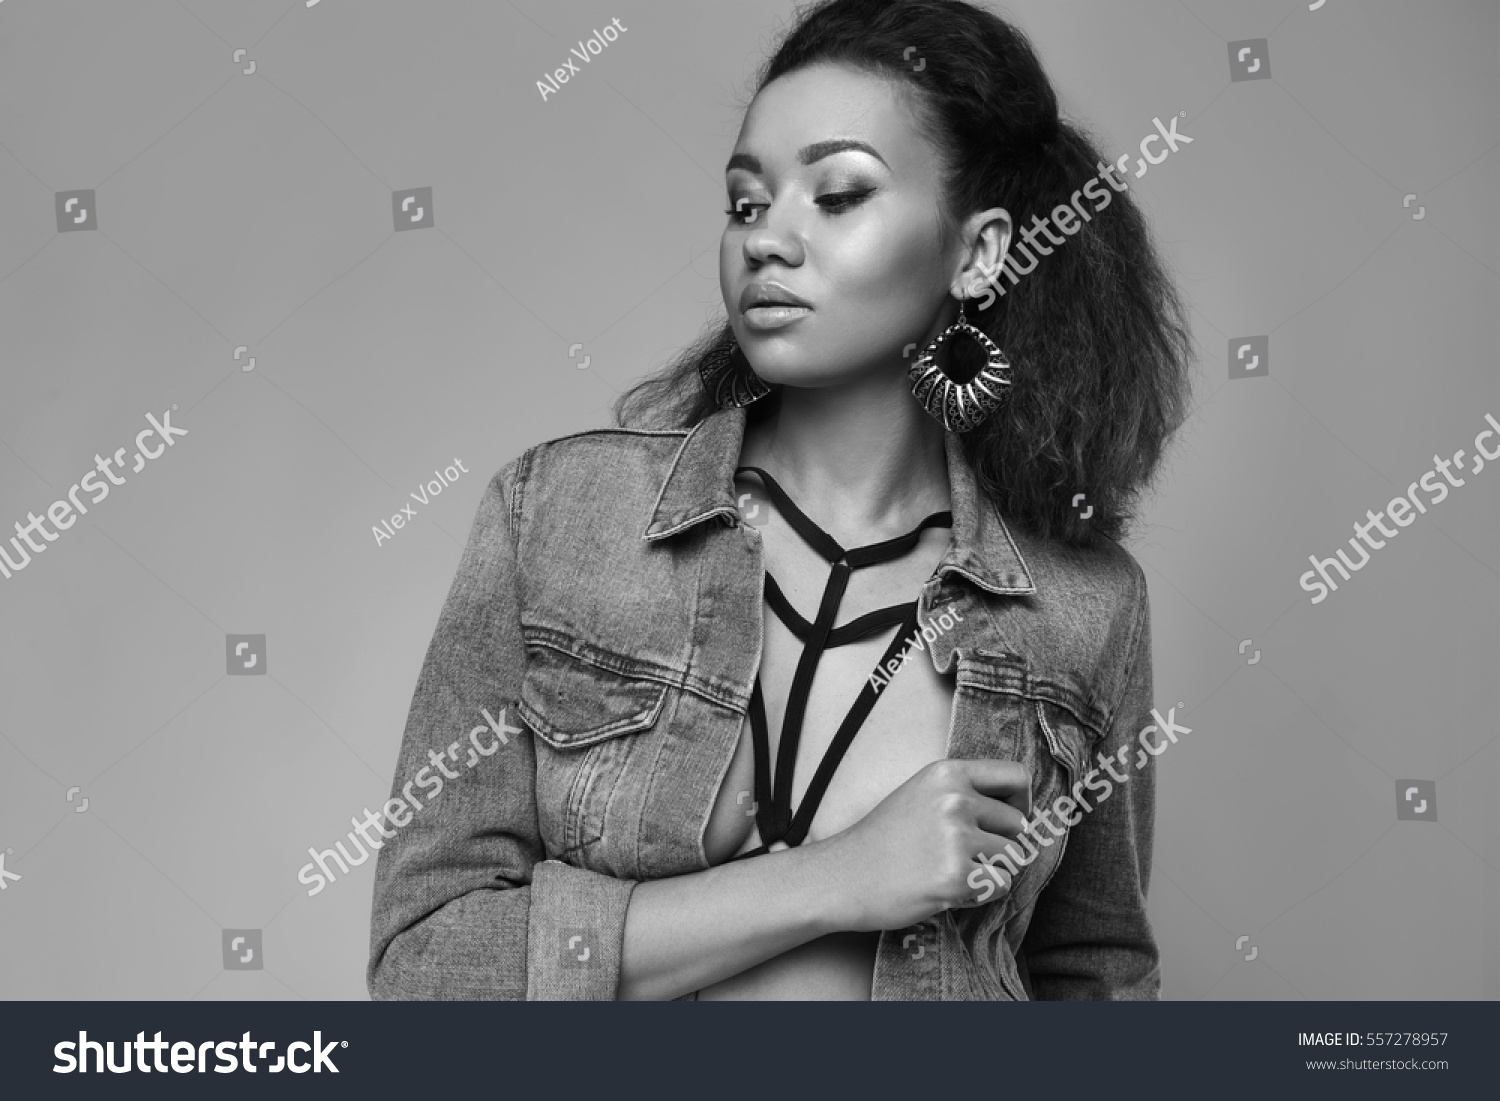 e2733a19f6ad Portrait of glamor elegant black woman model in jeans jacket posing on a  gray background in